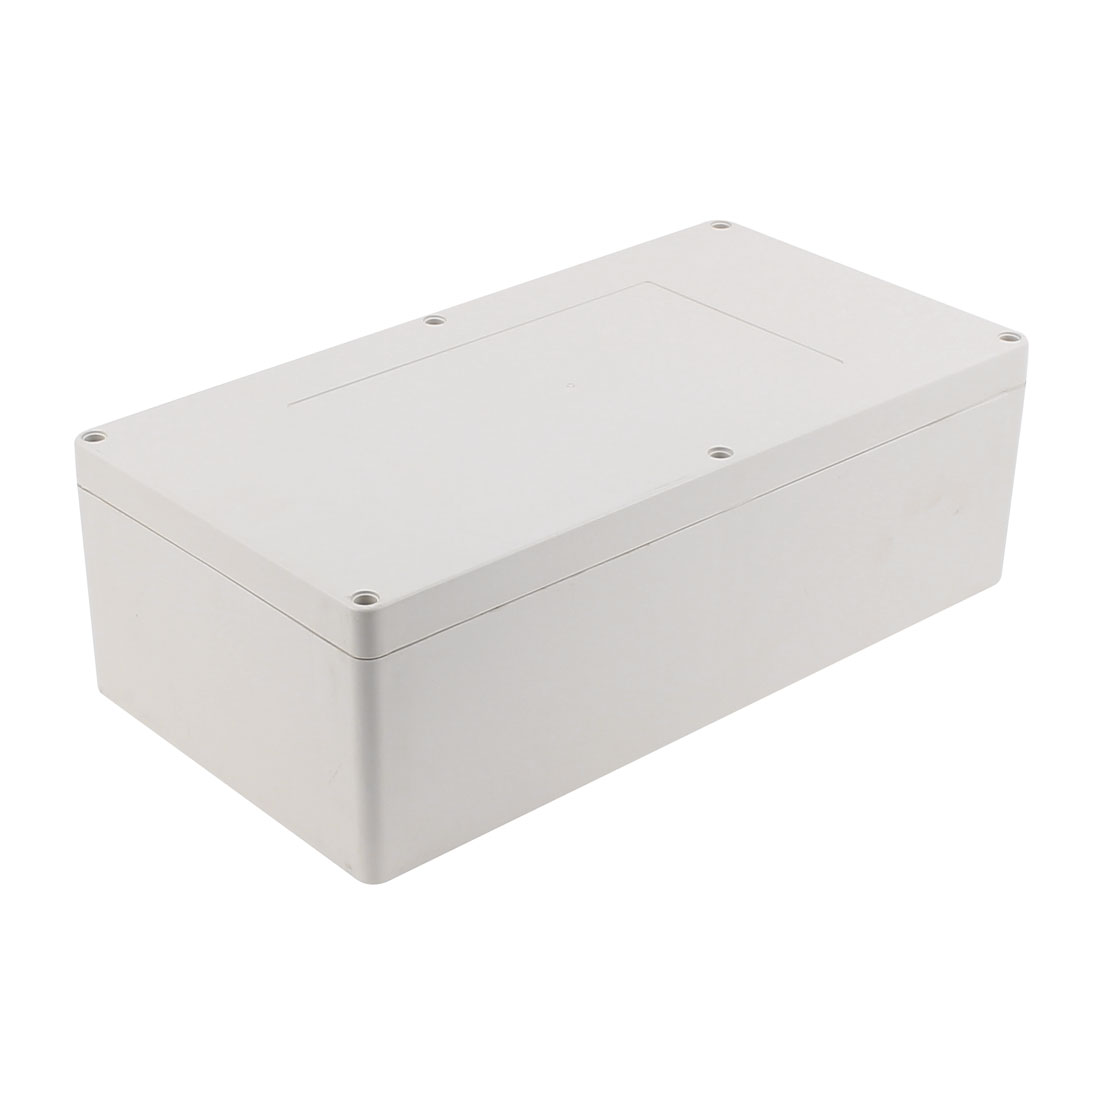 340 x 270 x 100mm Dustproof IP65 Junction Box Terminal Connecting Box Enclosure